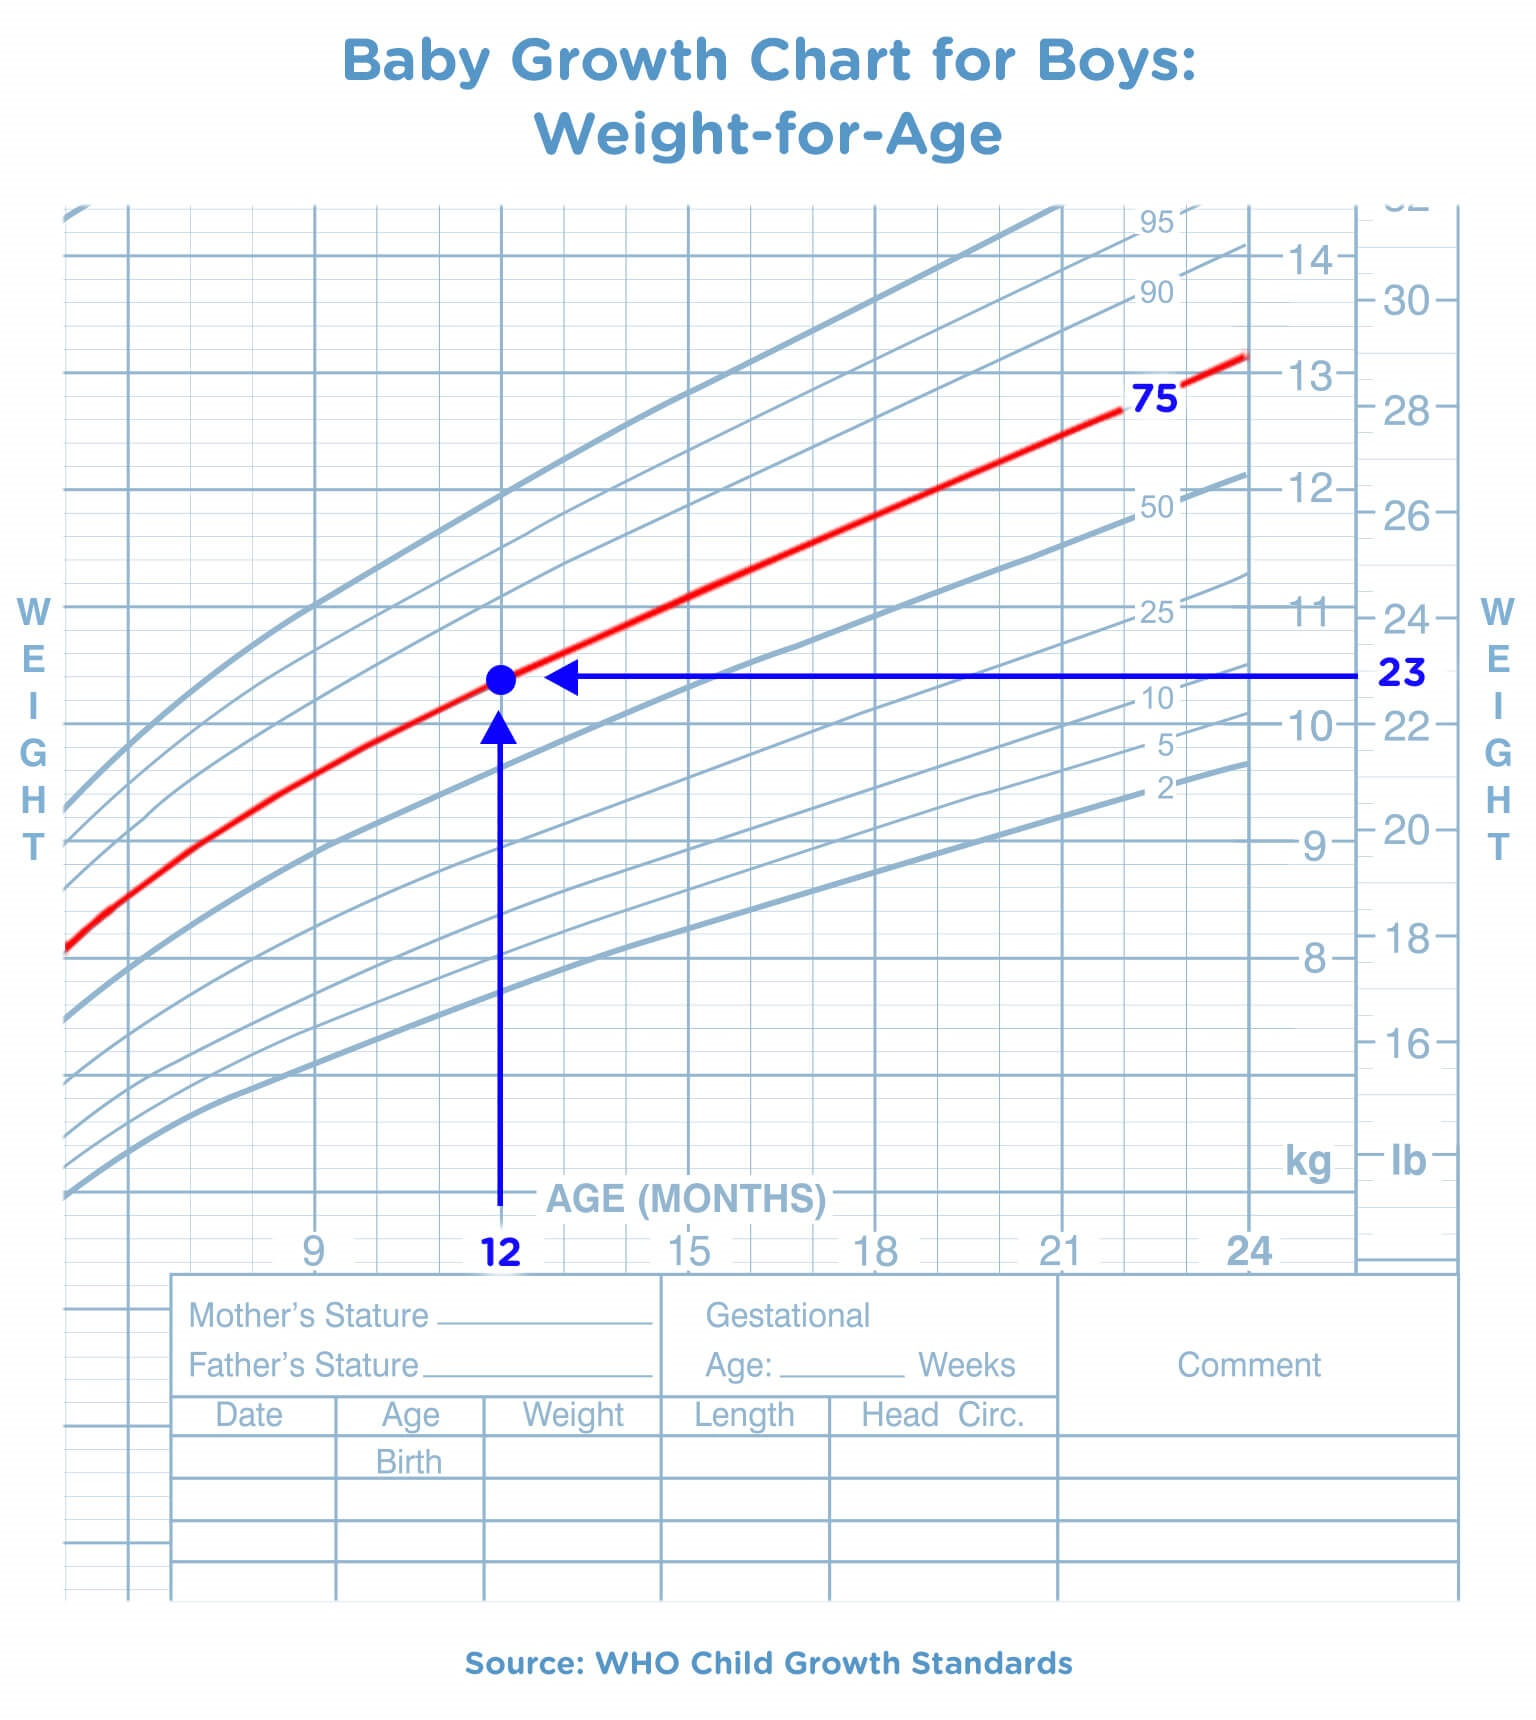 Baby Growth Chart for Boys Weight